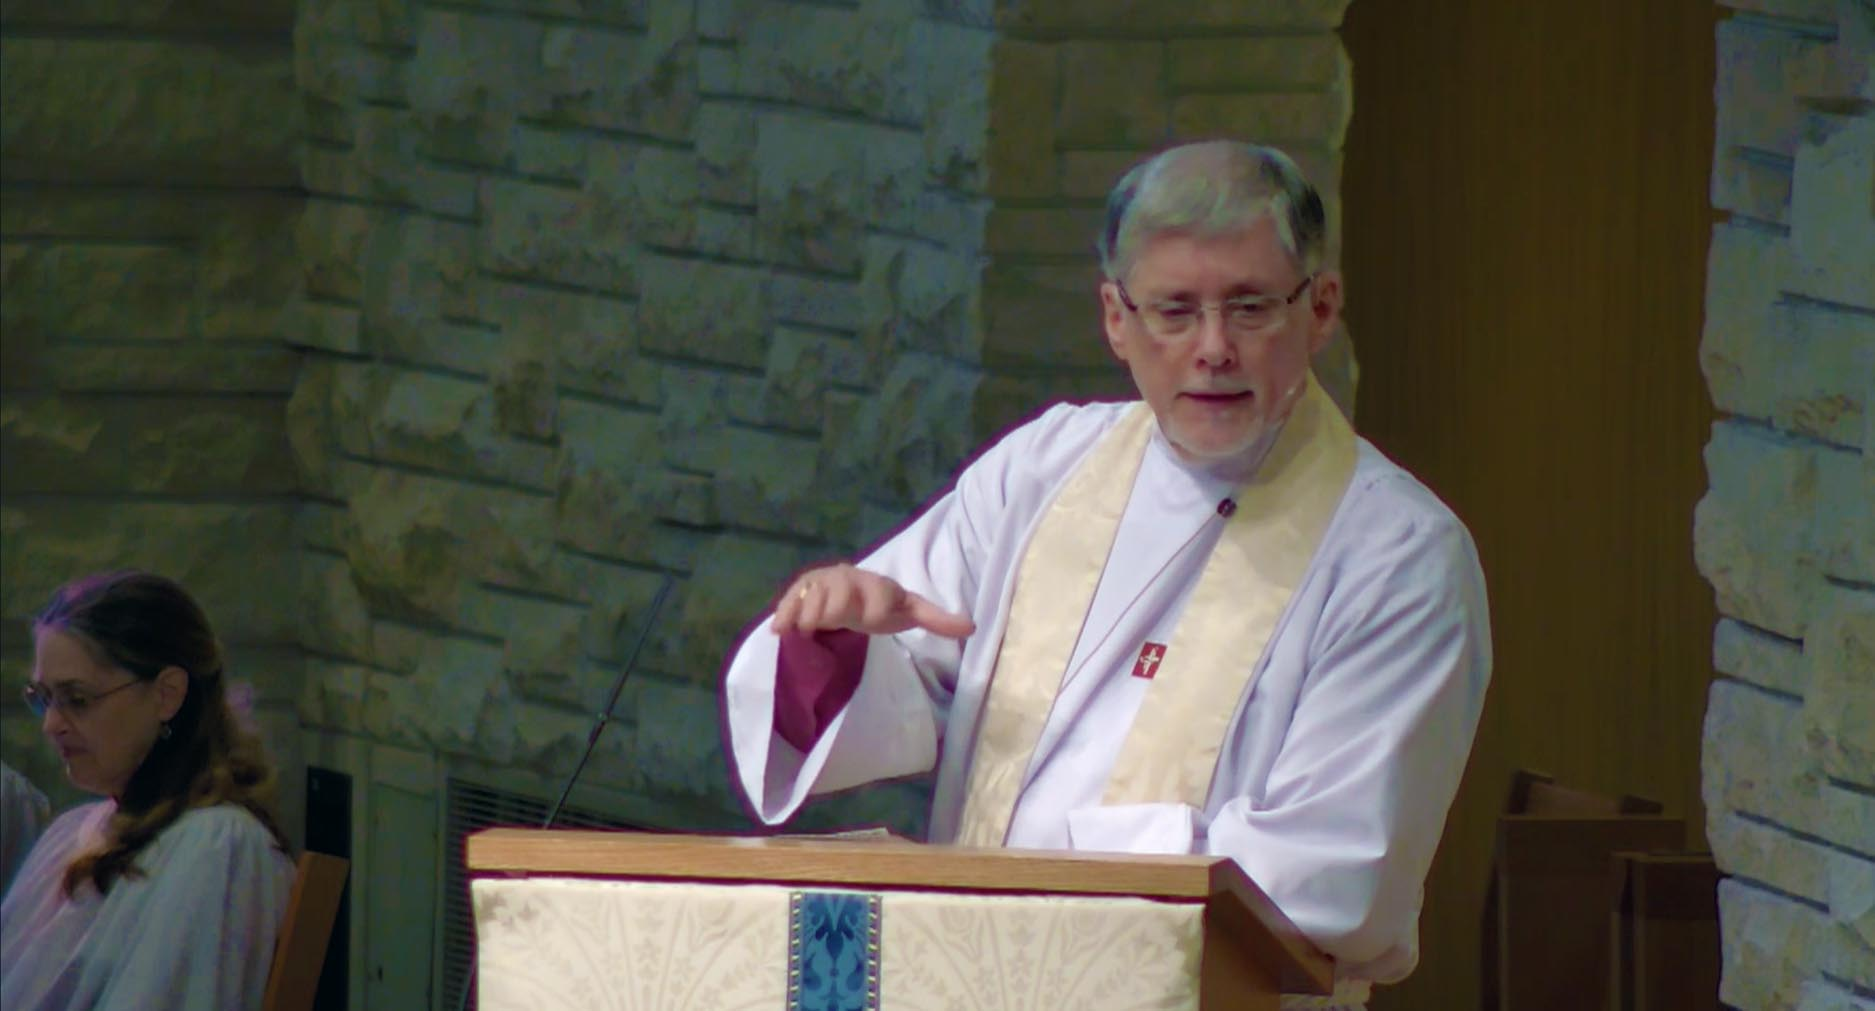 Five Christian Core Values: Bishop Gary Lillibridge